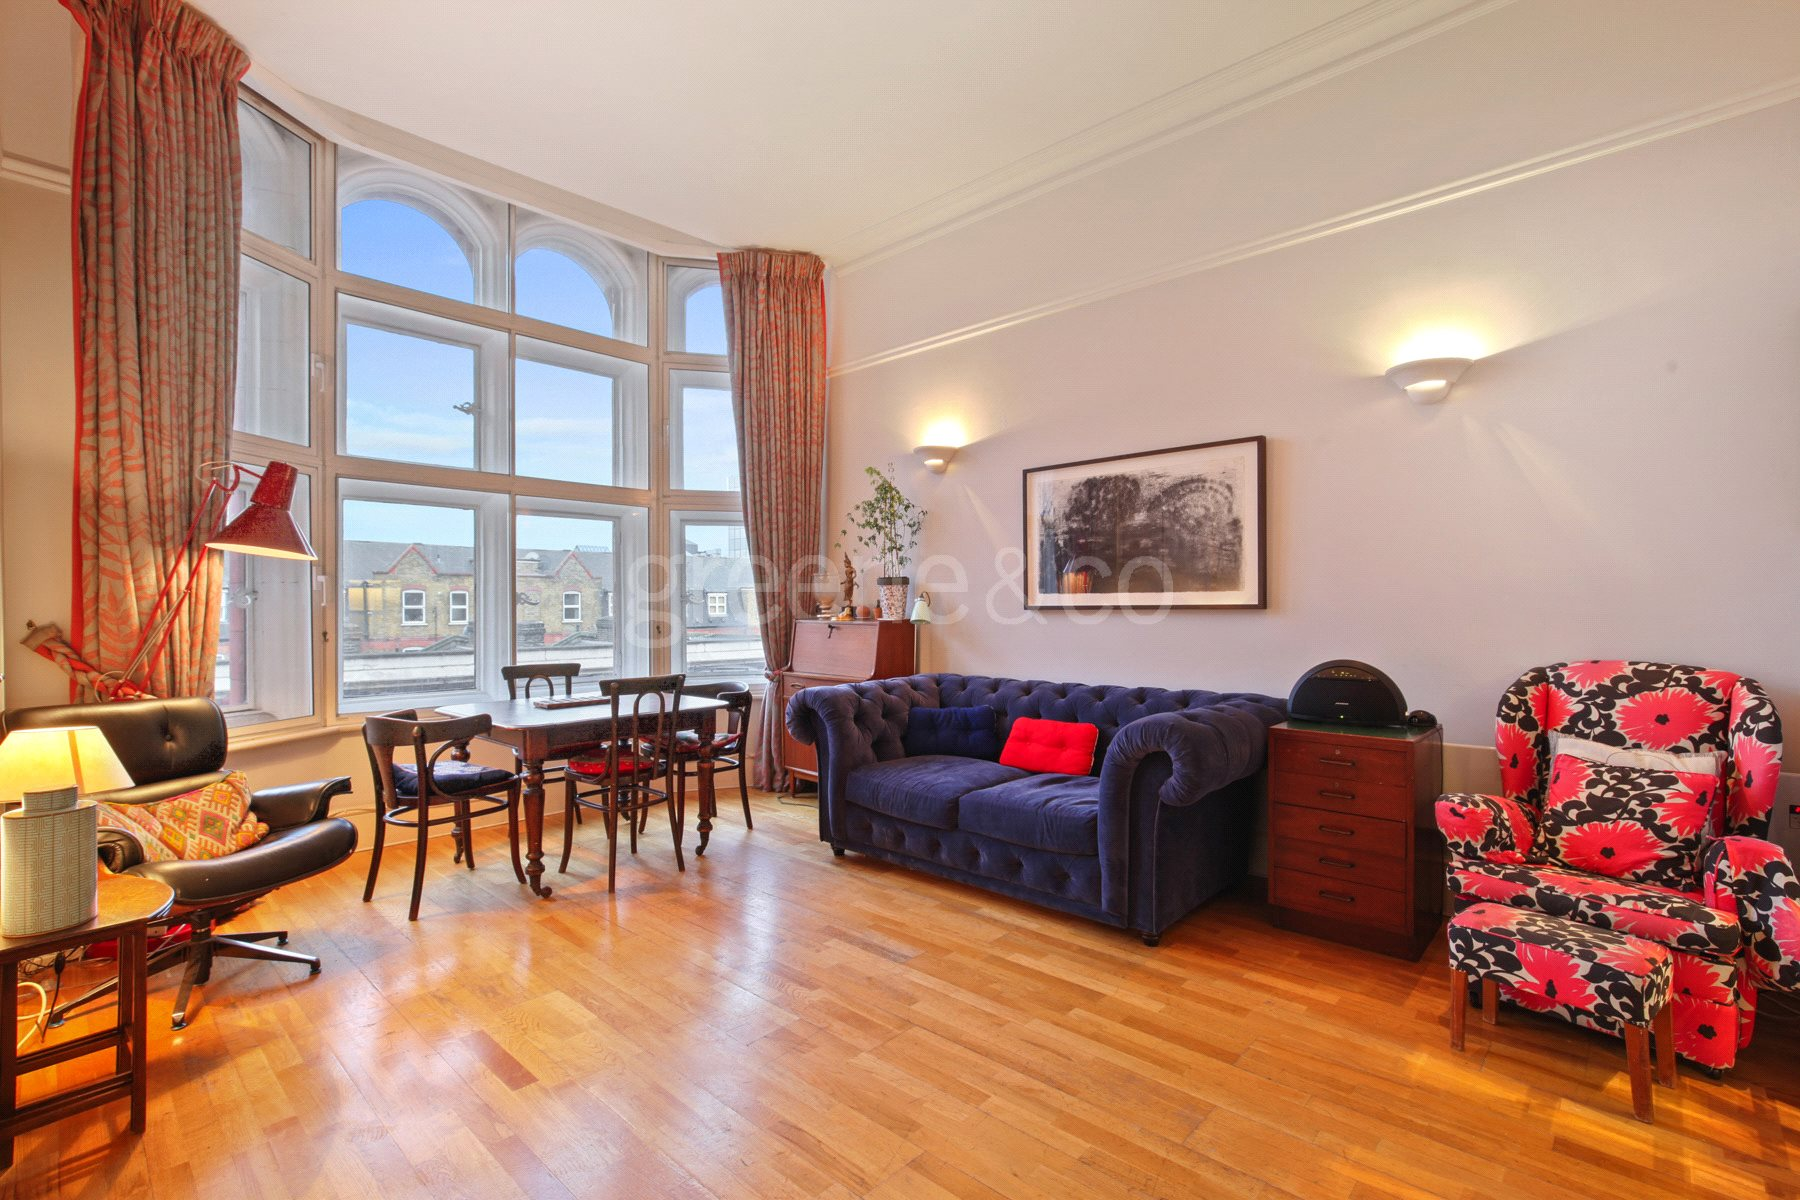 2 bedroom house for sale city road old street ec london for Classic house old street london